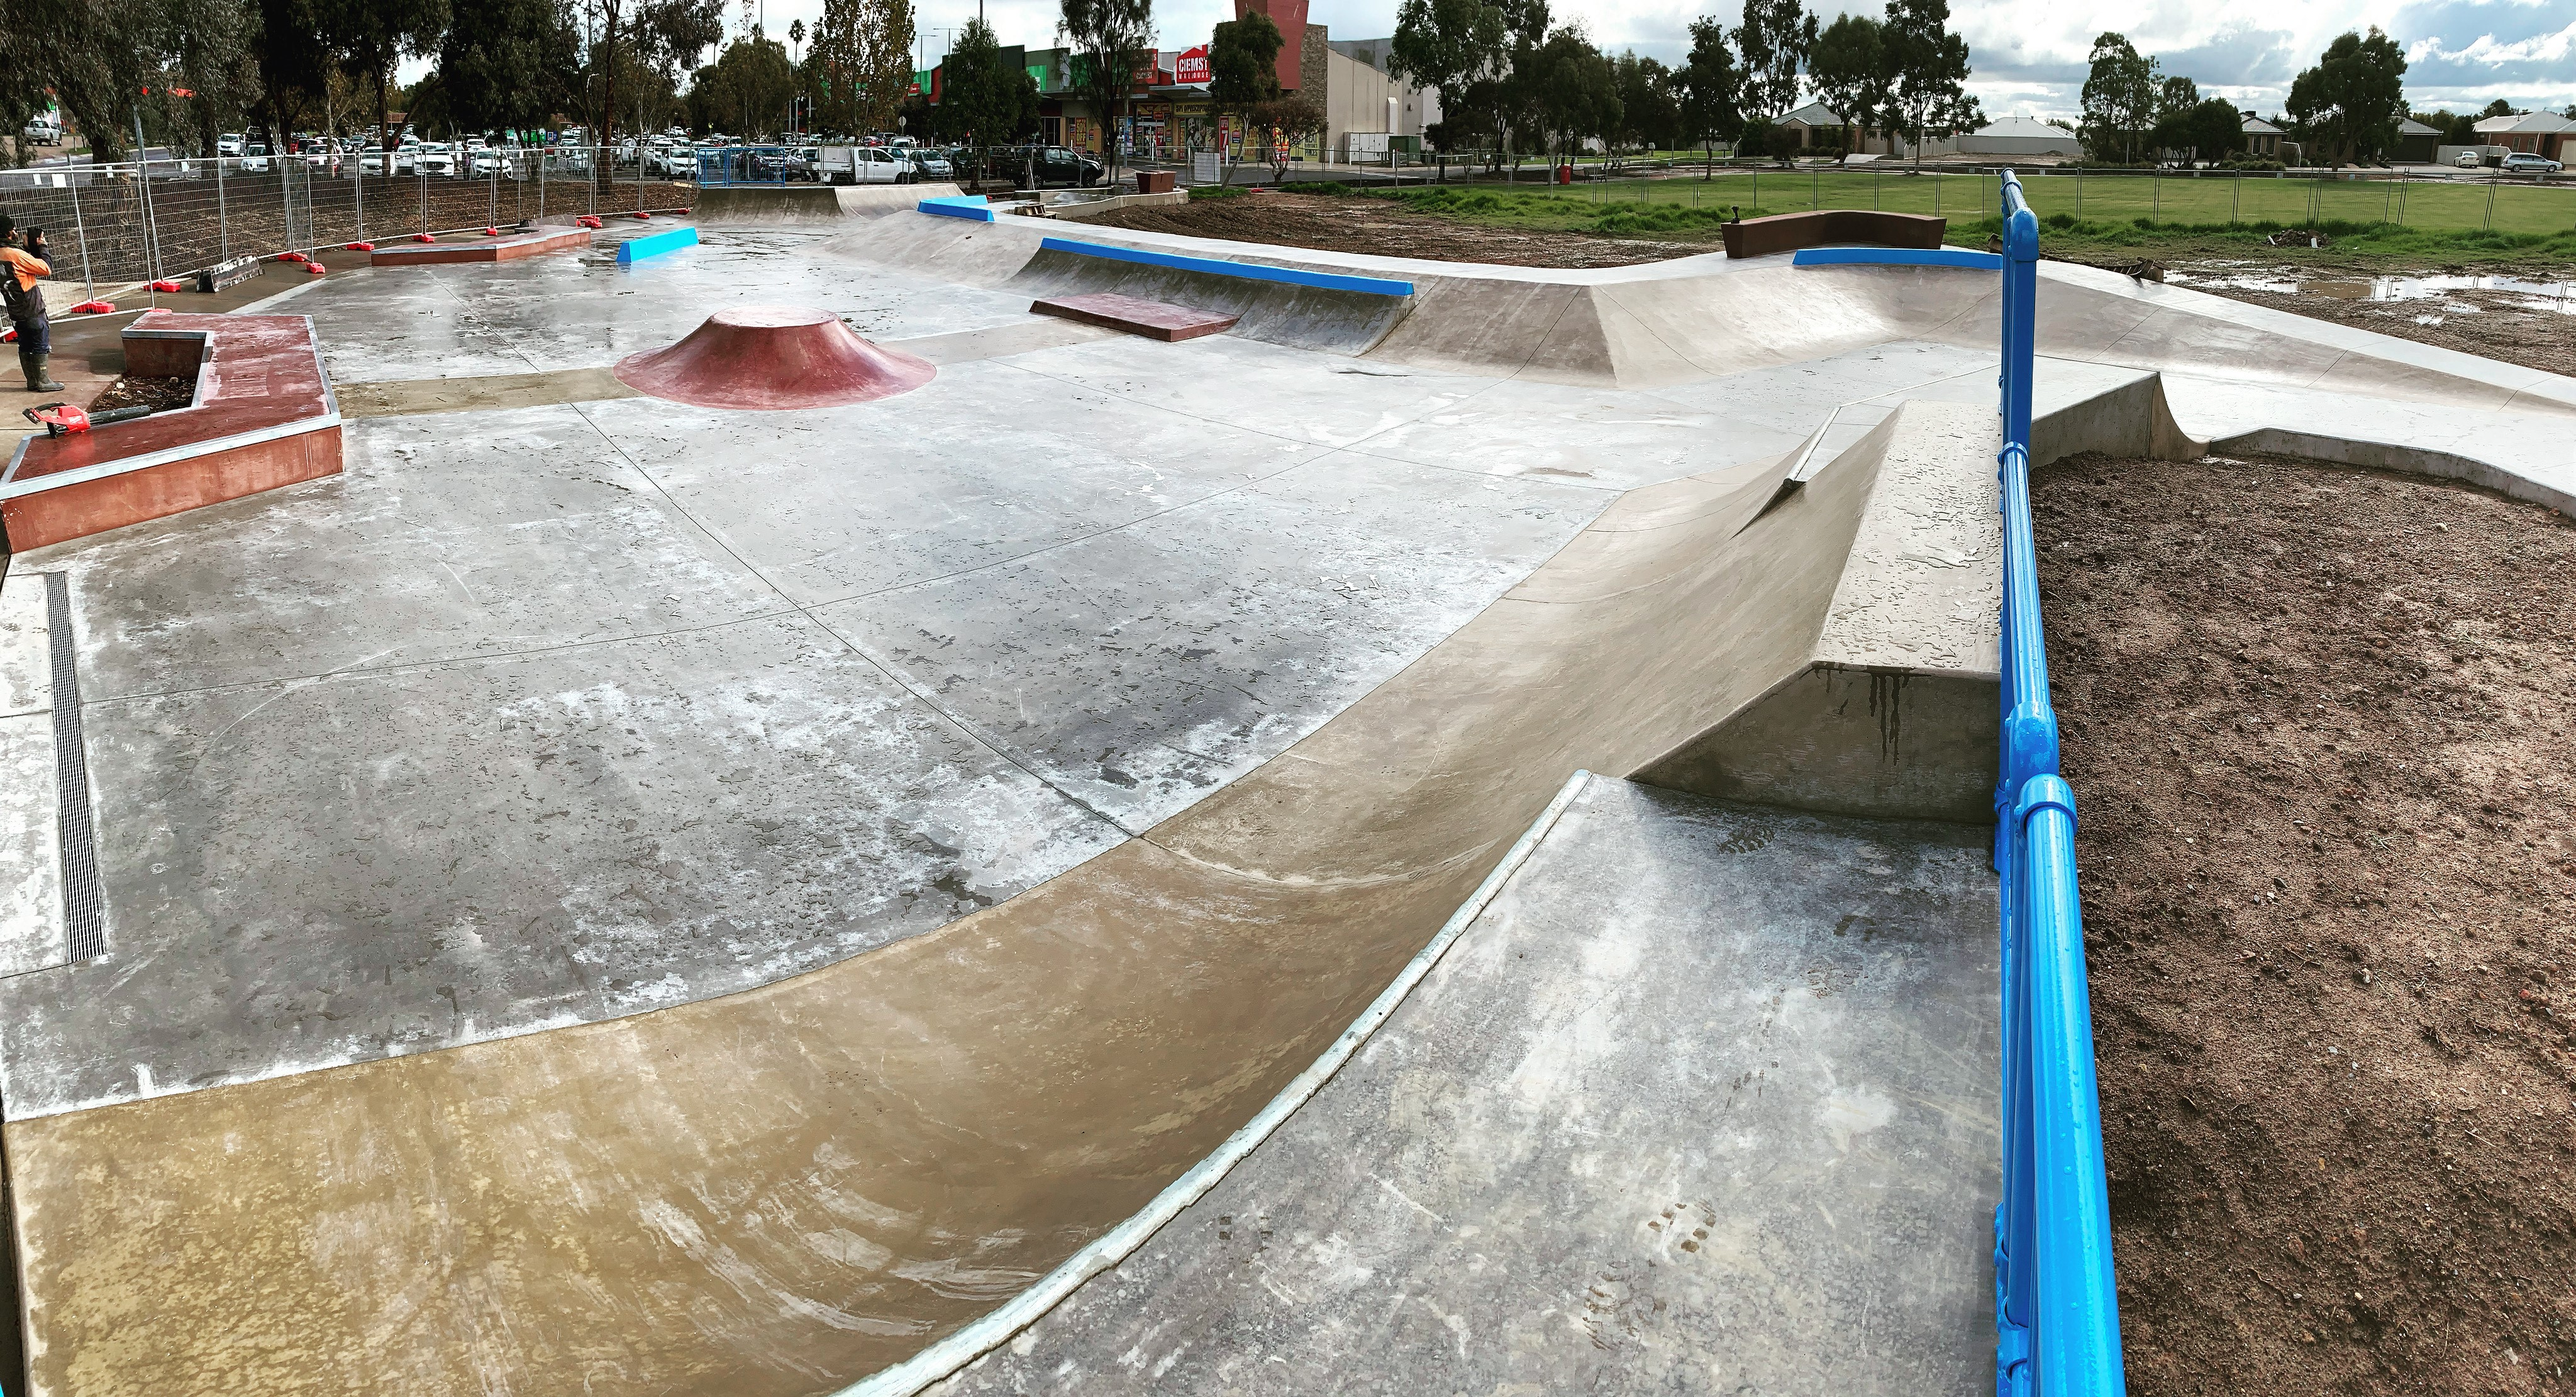 Skate park in construction by Drover Projects